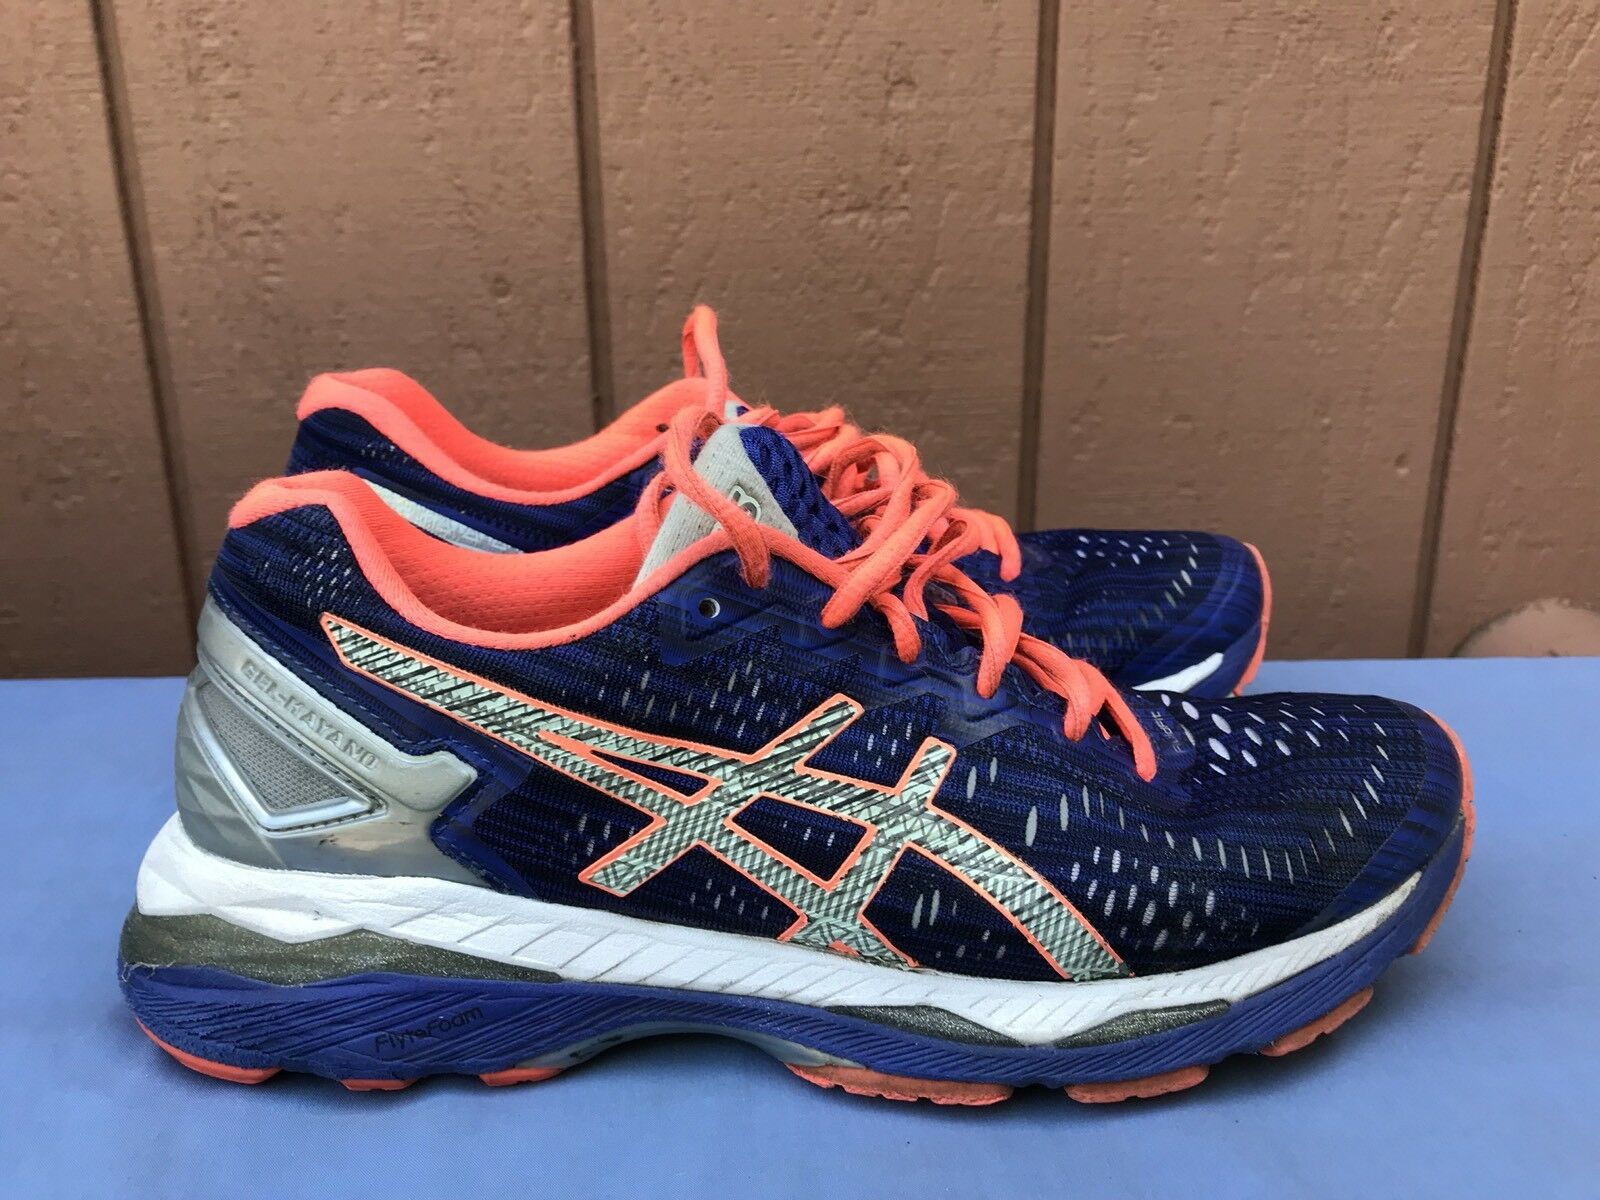 Asics Women's US 8 Gel-Kayano 23 Shoes T6A6N 4593 Blue/Silver/Flash Coral A5